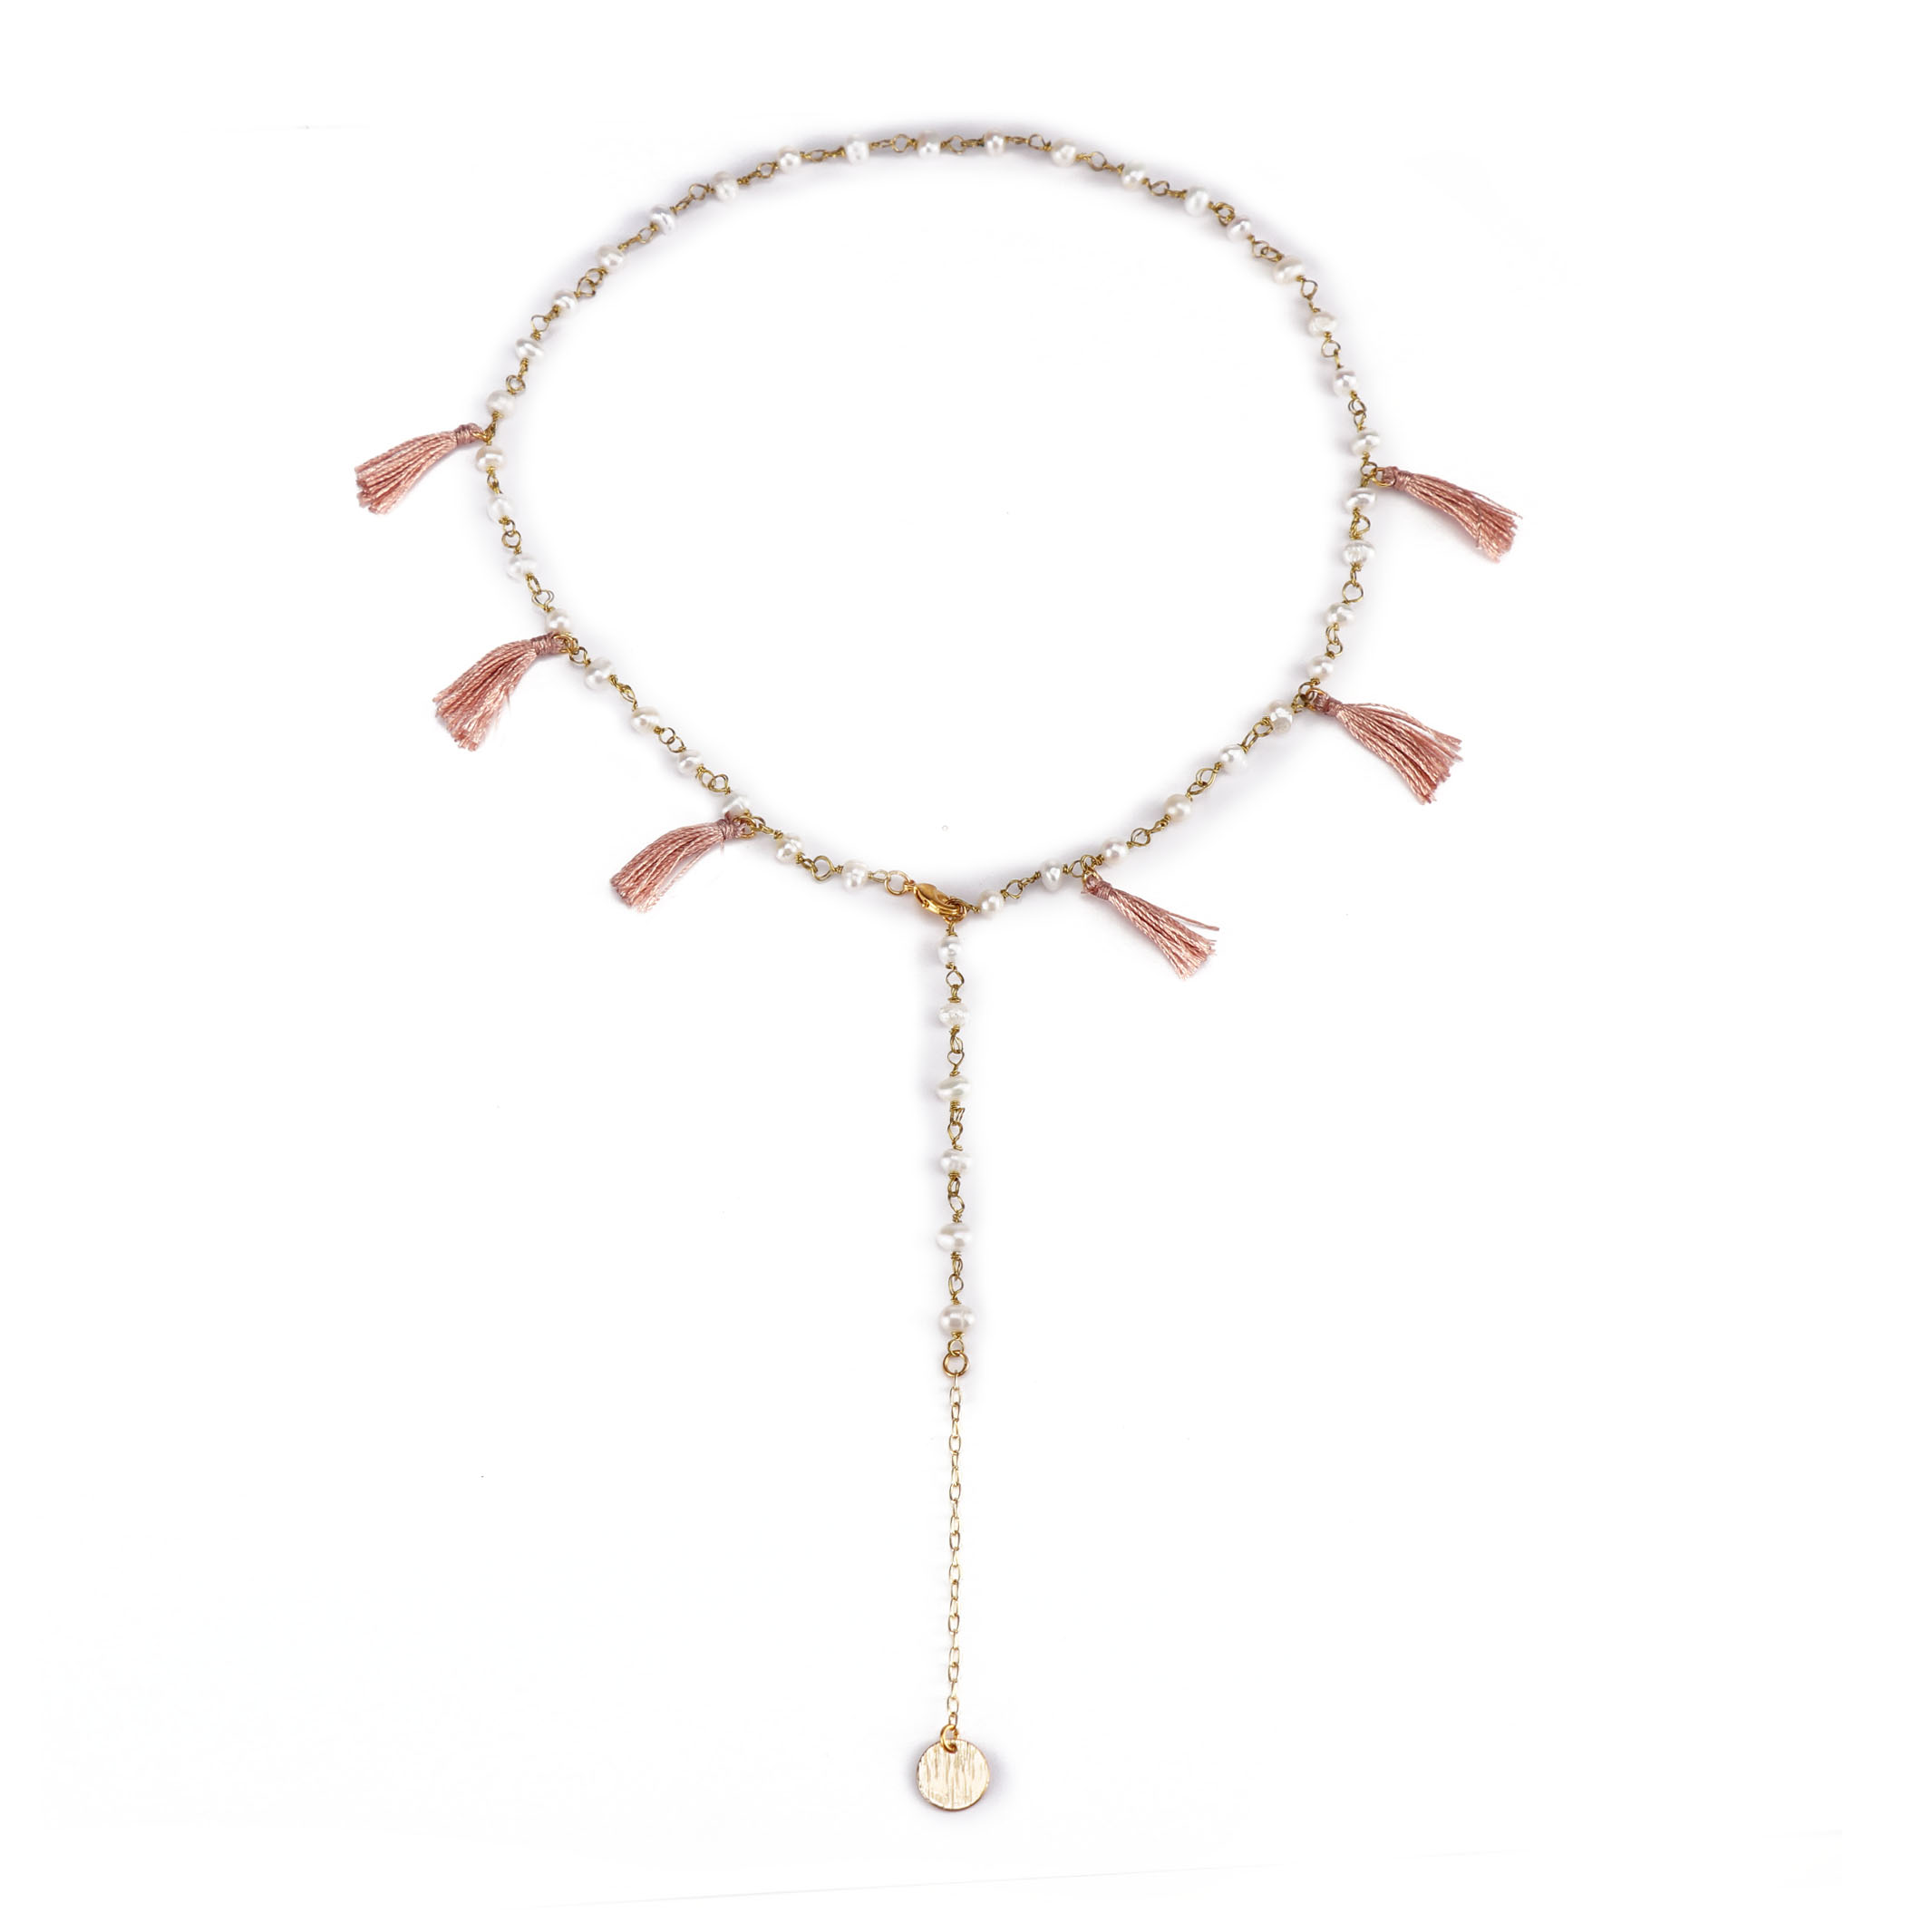 Stylish Wholesale Gold Plated Crystal Beads Necklace With Pink Color Tassel Women Jewlery